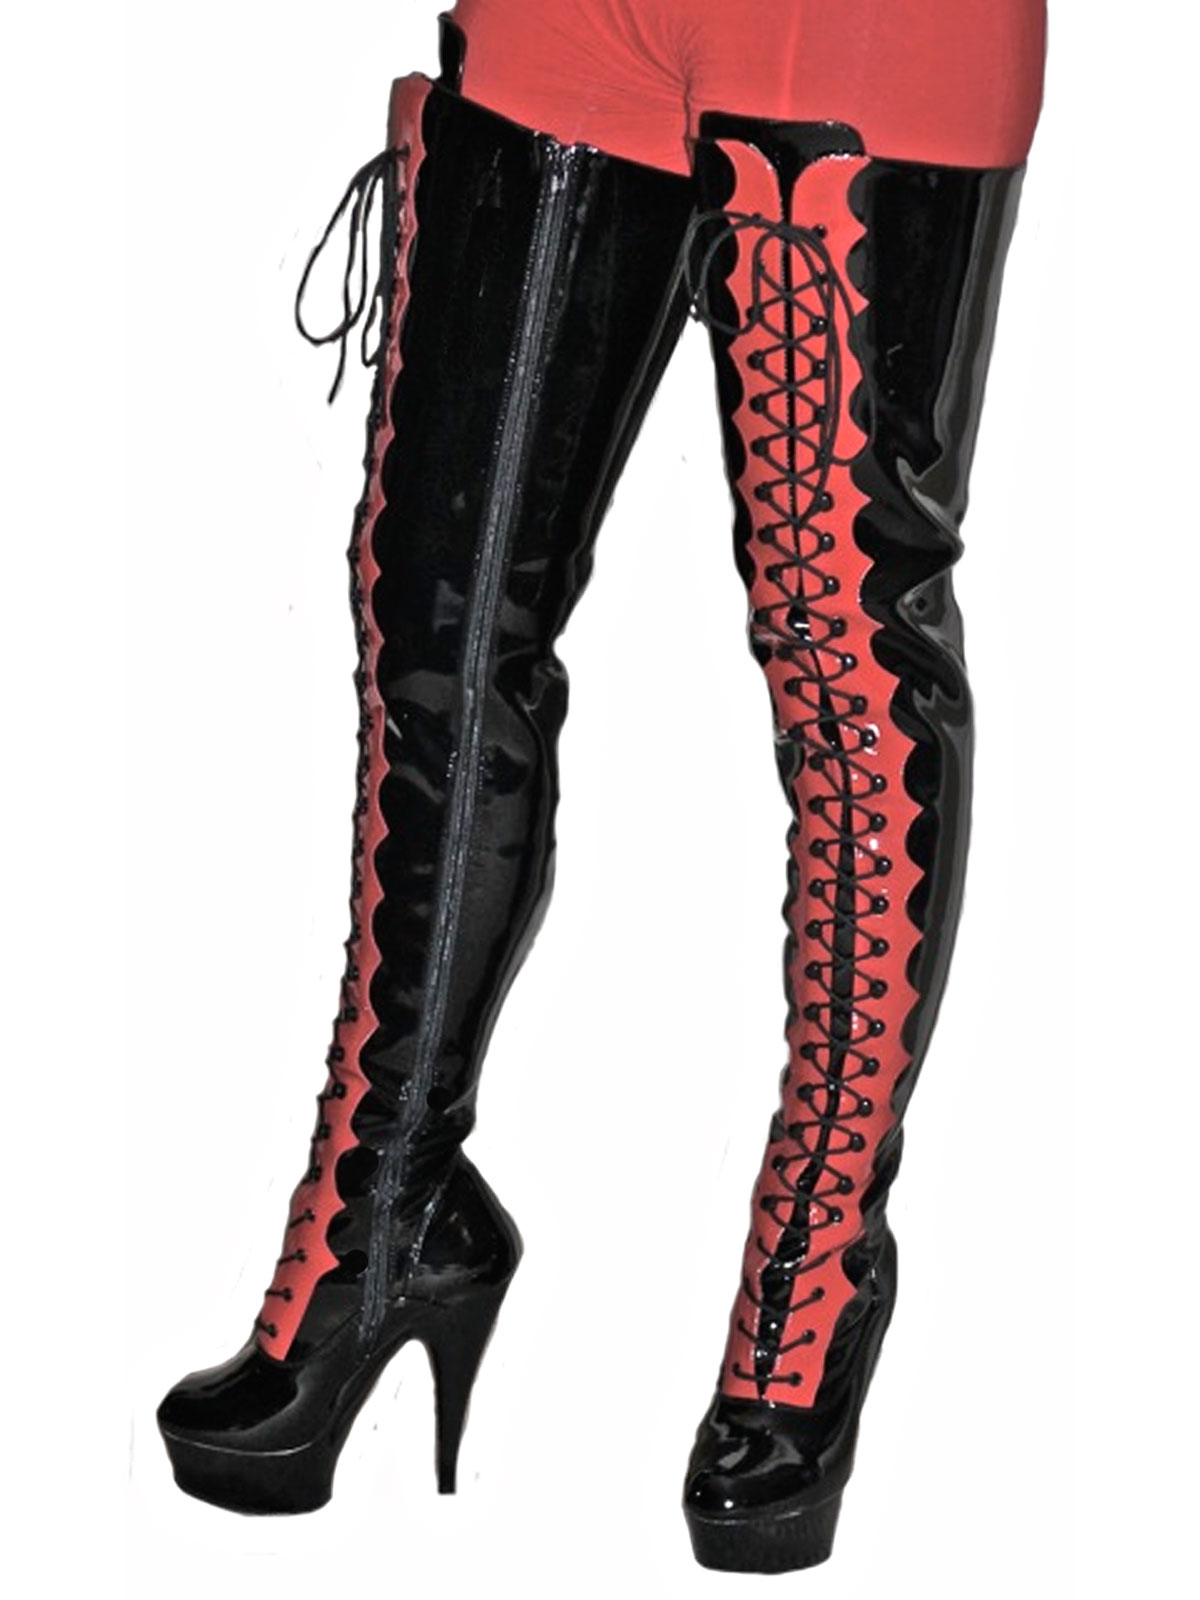 Pleaser Thigh High Boots - Cr Boot